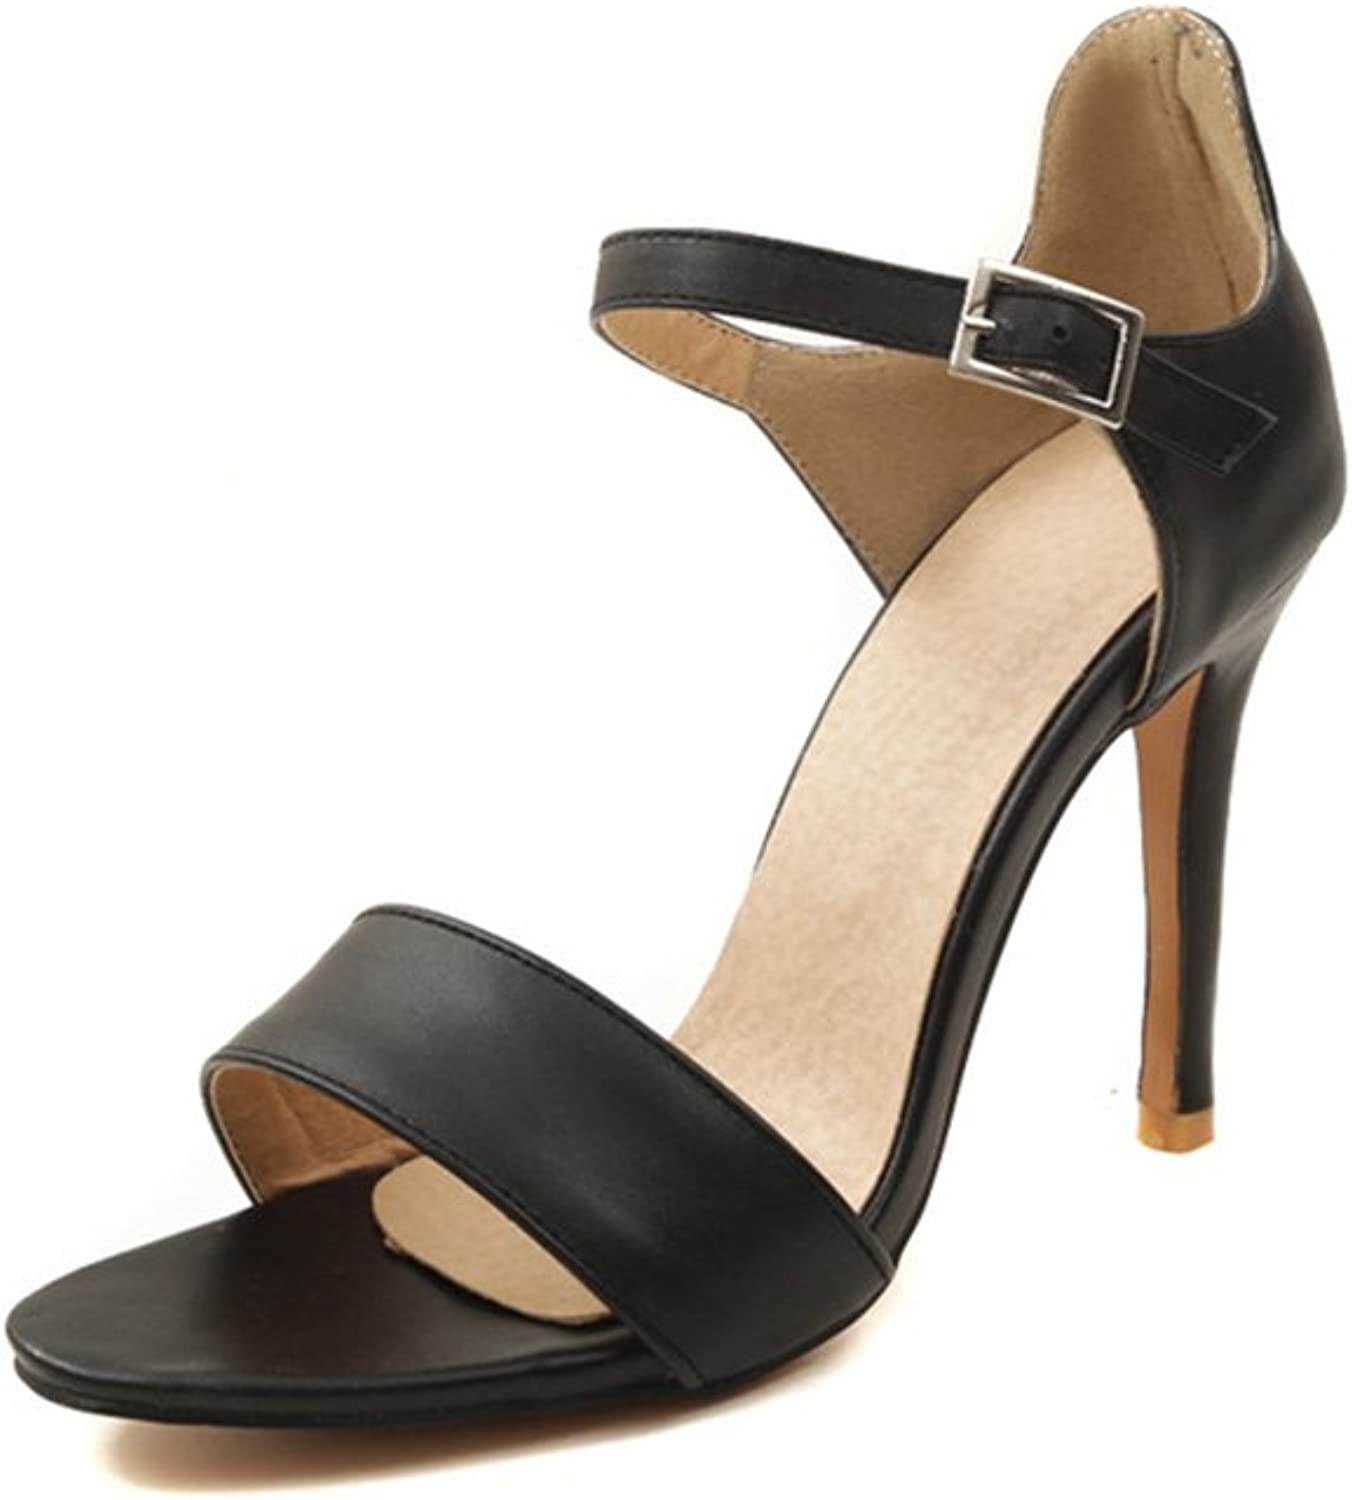 Women Sexy Heeled Sandals Summer Stiletto Open Toe Ankle Strap Buckle Dress shoes Party Pumps